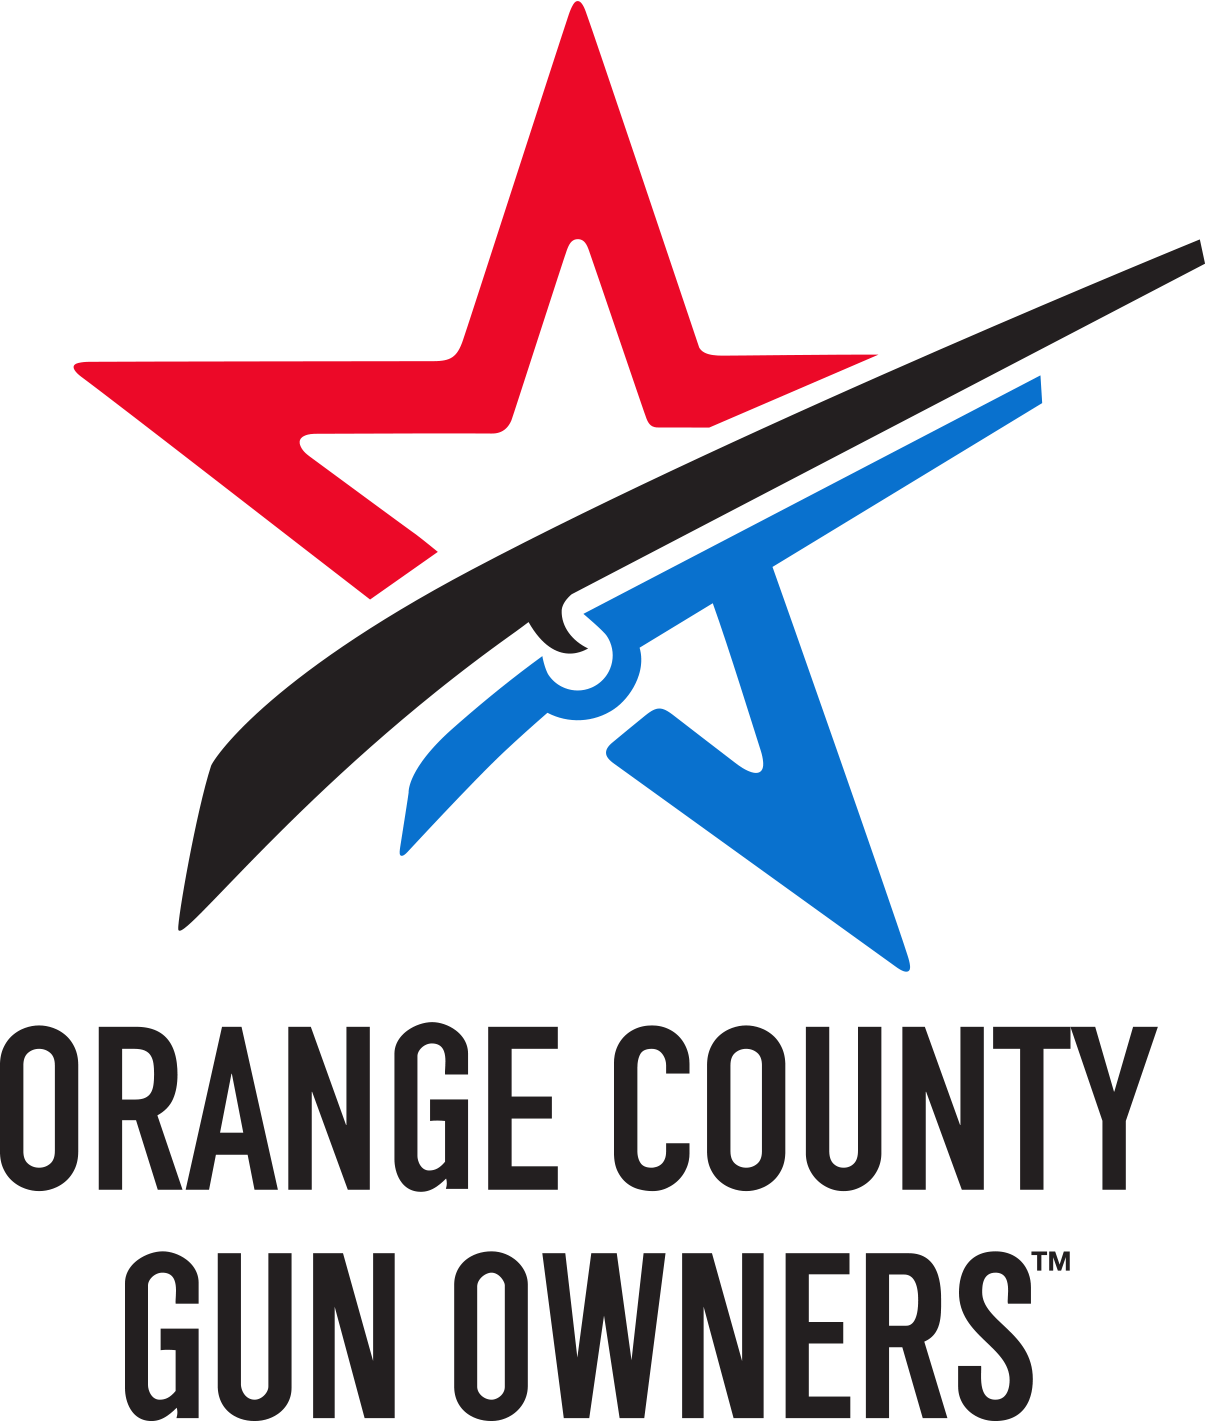 Weekly Email 1/14/2021: 2A Discussion Night TONIGHT! / Activist Update Video / January Monthly Meeting / CCW Seminar / Ammo Shortage – Are You Hoarding Or Preparing?